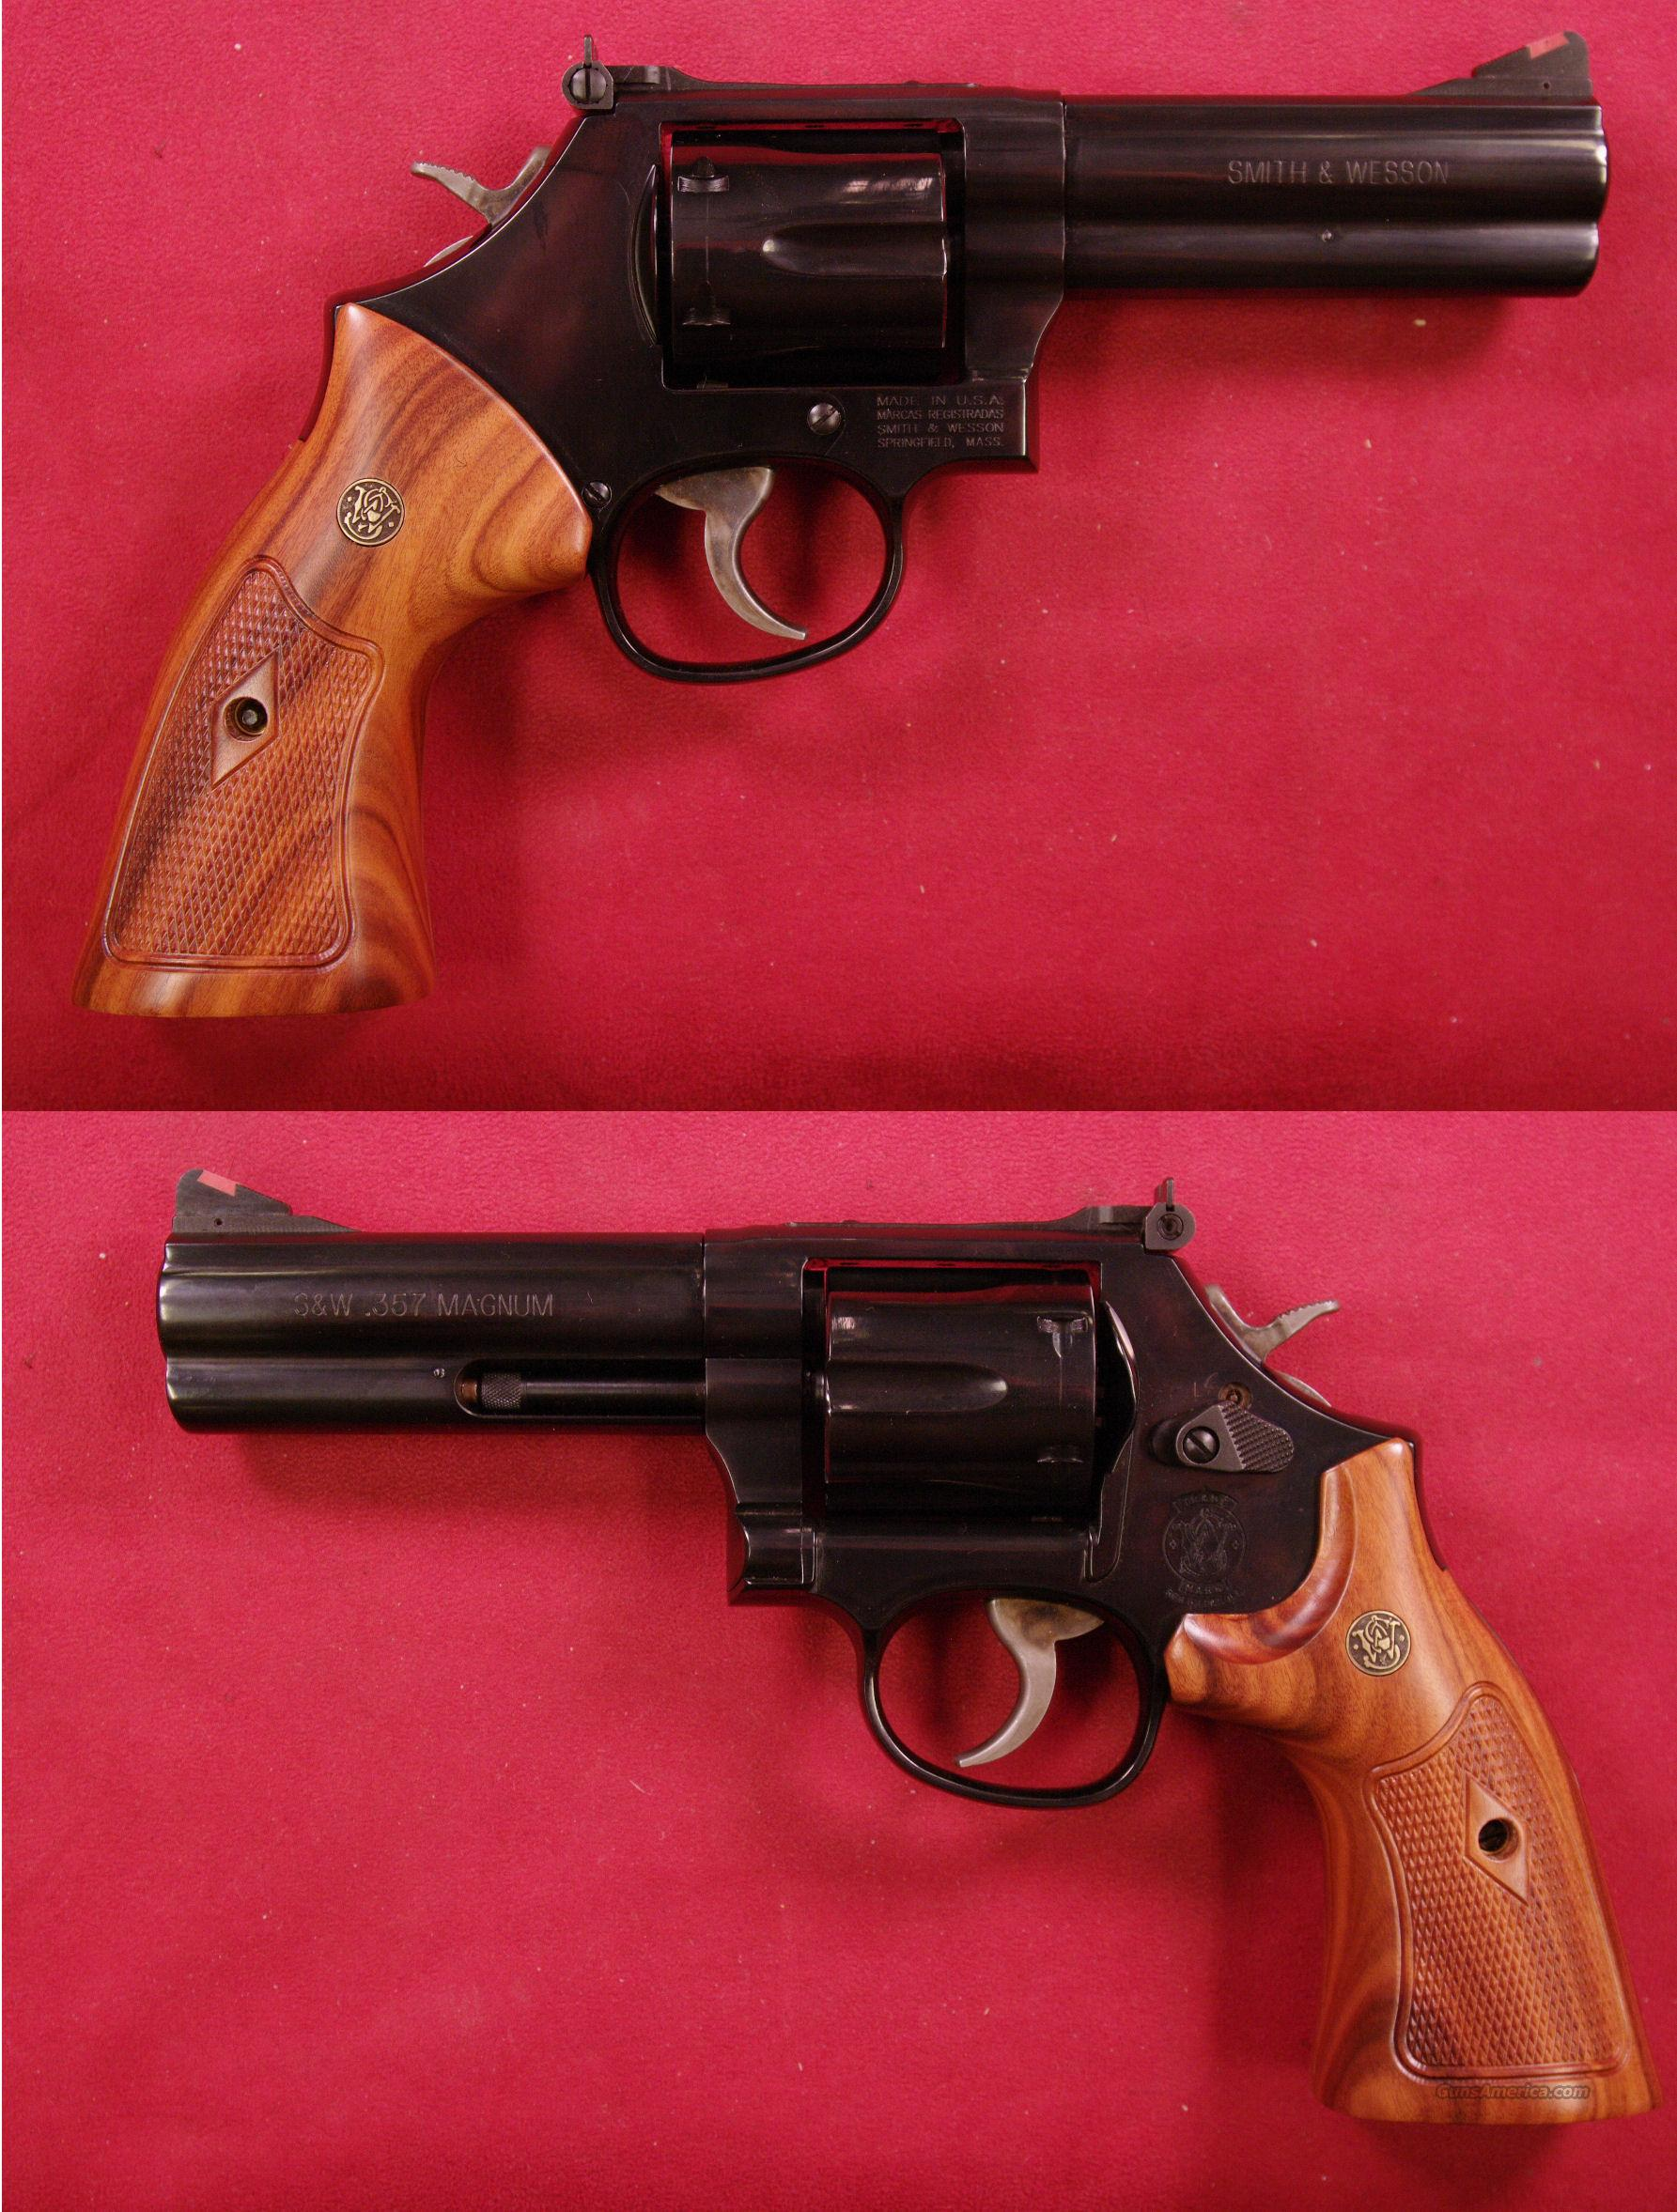 SMITH & WESSON 586  .357 Magnum   Guns > Pistols > Smith & Wesson Revolvers > Full Frame Revolver